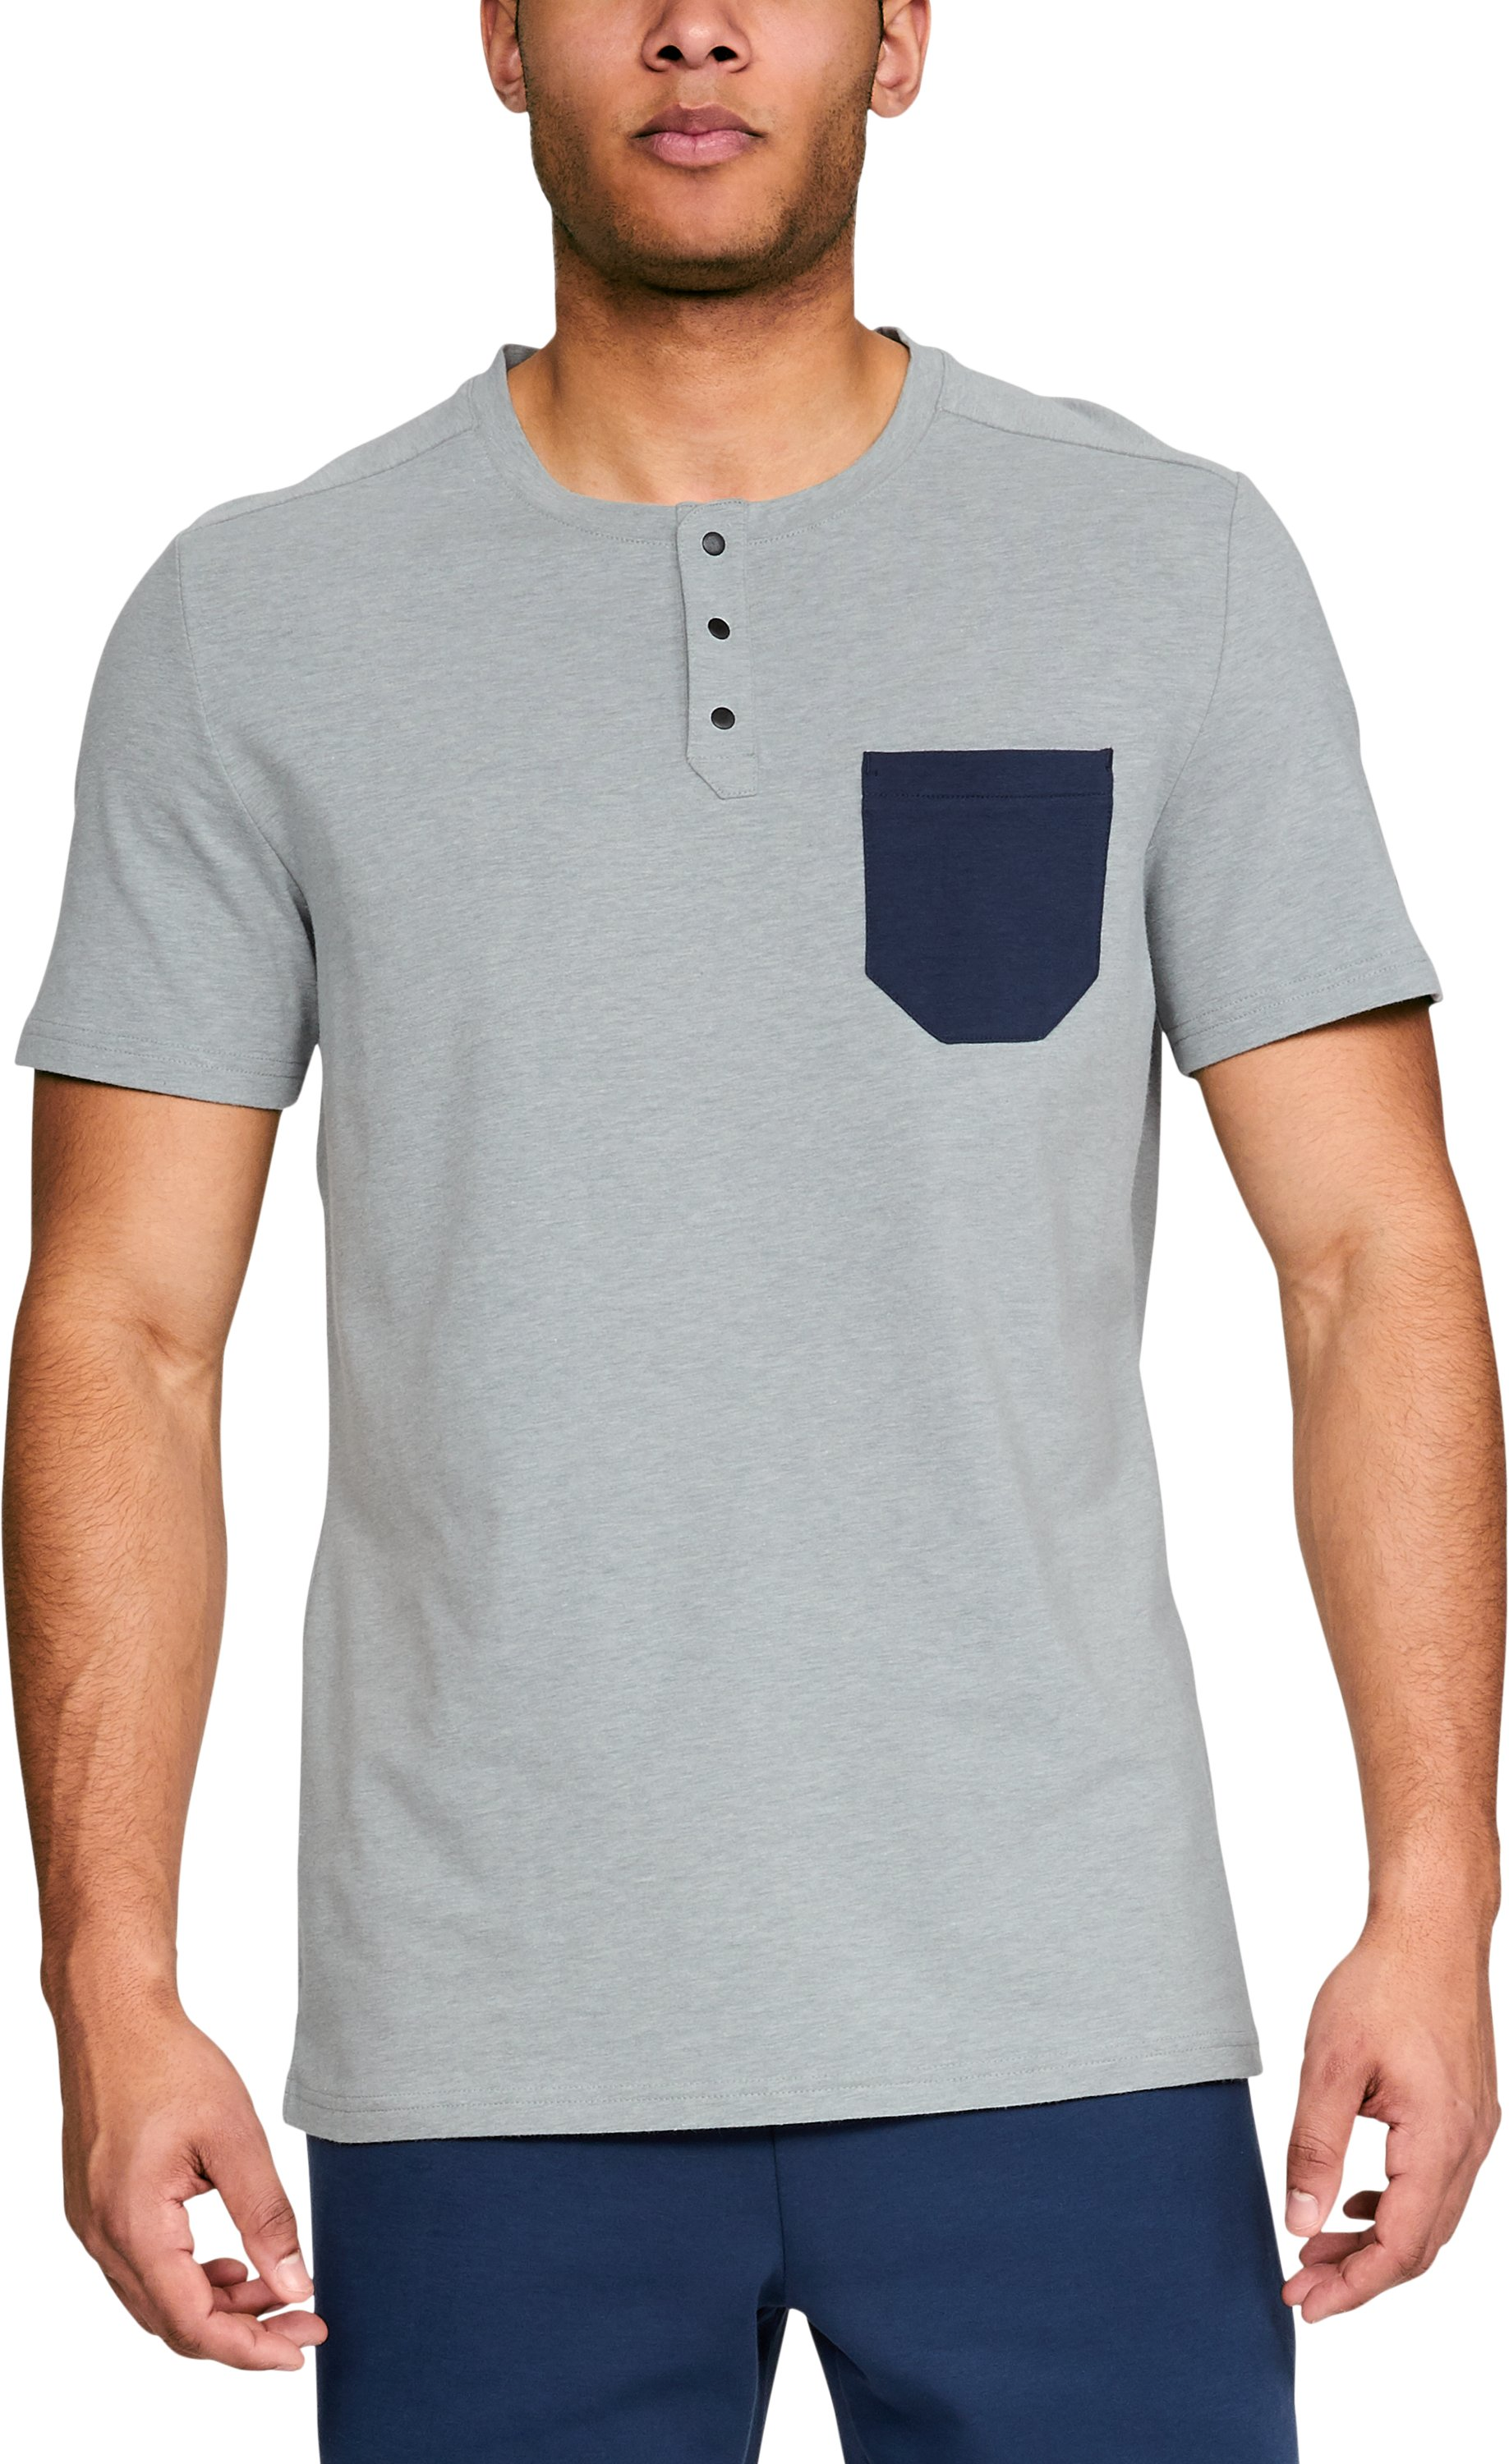 short sleeve henleys Men's UA Unstoppable Short Sleeve Henley Shirt looks great enough to pair with anything - jeans, shorts chinos....Size large fits me perfectly at 6' 198lbs....These shirts are stylish, but very very comfortable.